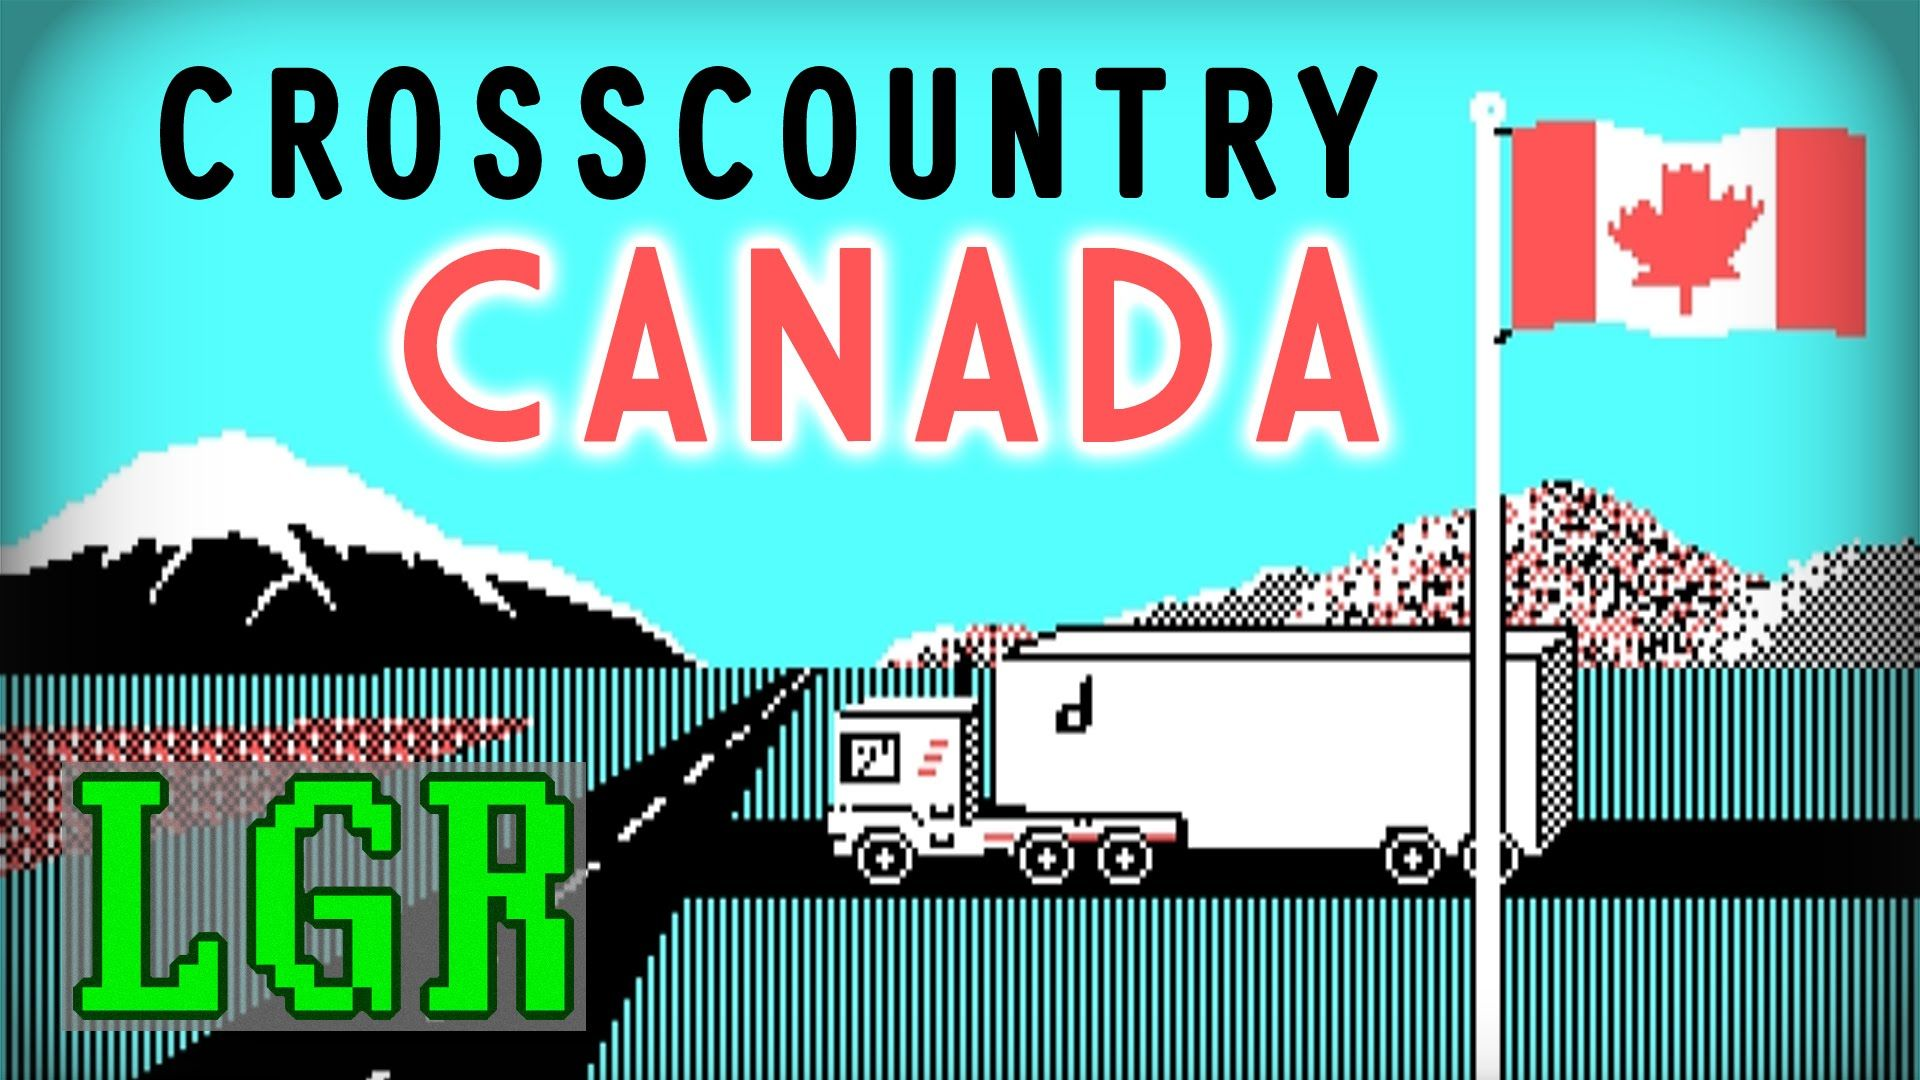 LGR Cross Country Canada DOS PC Game Review